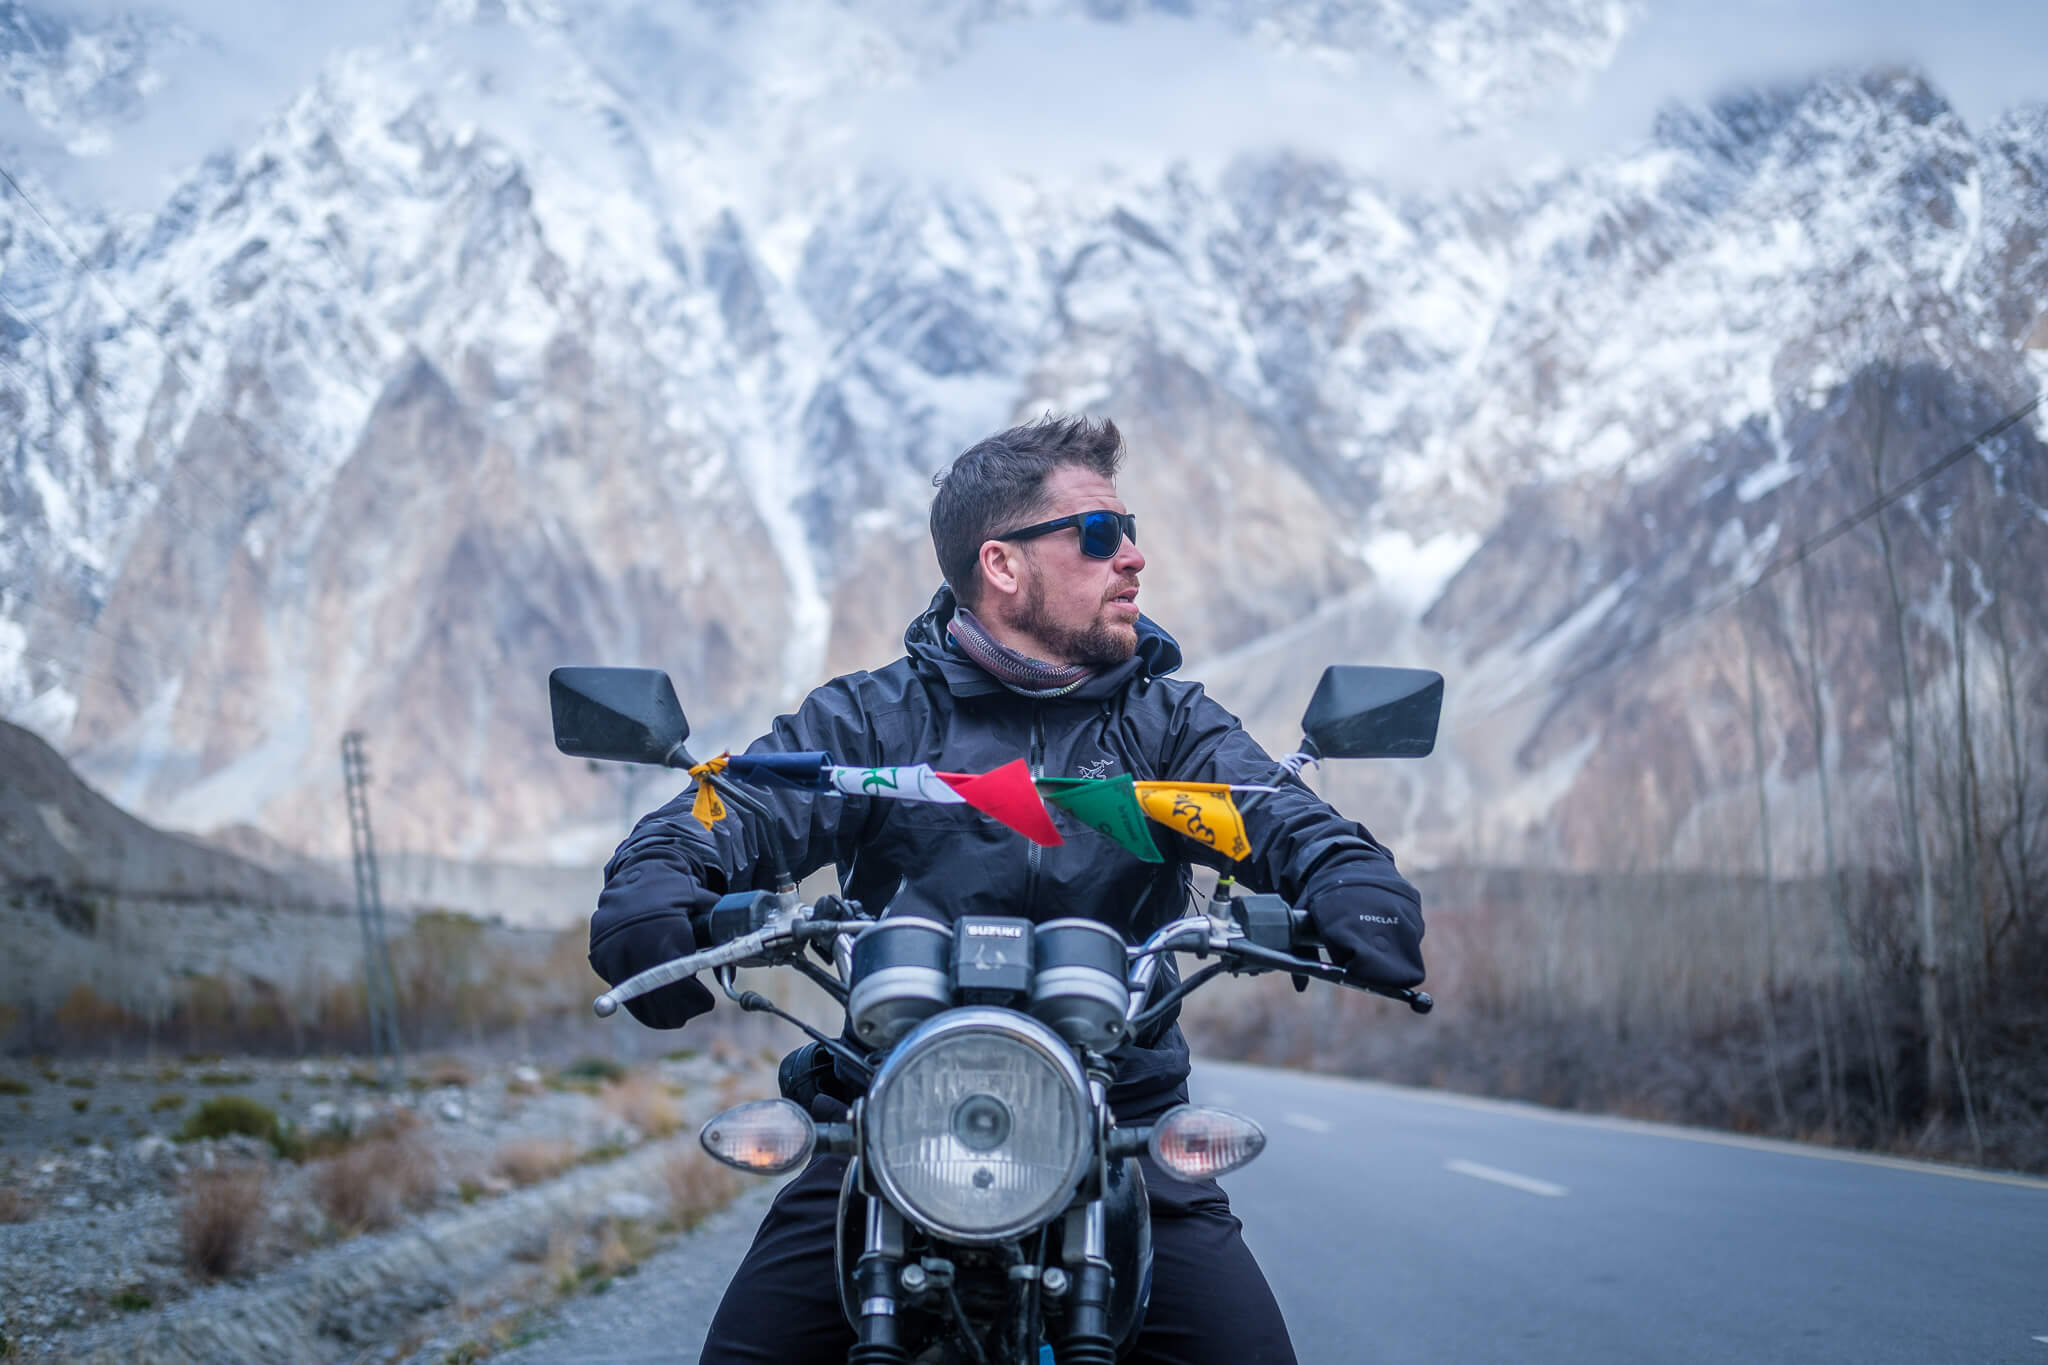 Will forgetting his travel problems while motorbiking in Pakistan